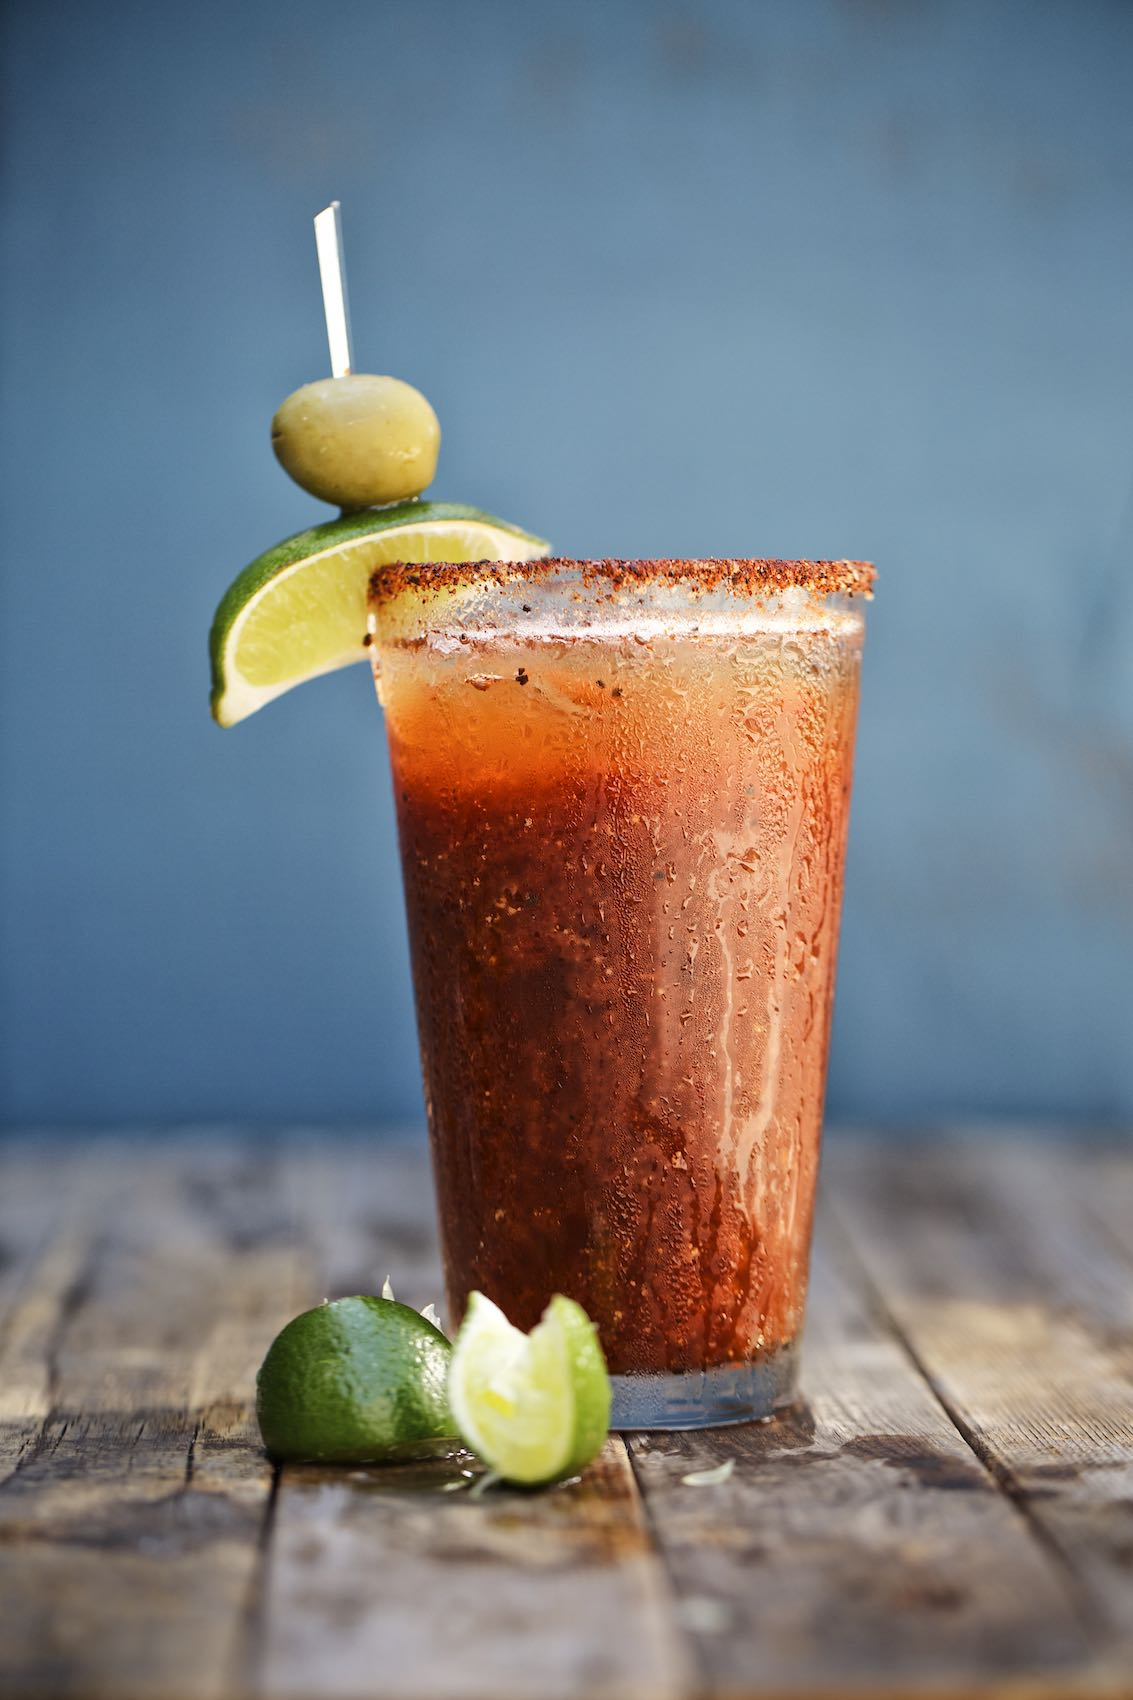 Jody Horton Photography - Michelada with lime on wood board at Smoke for Rizzoli Books.